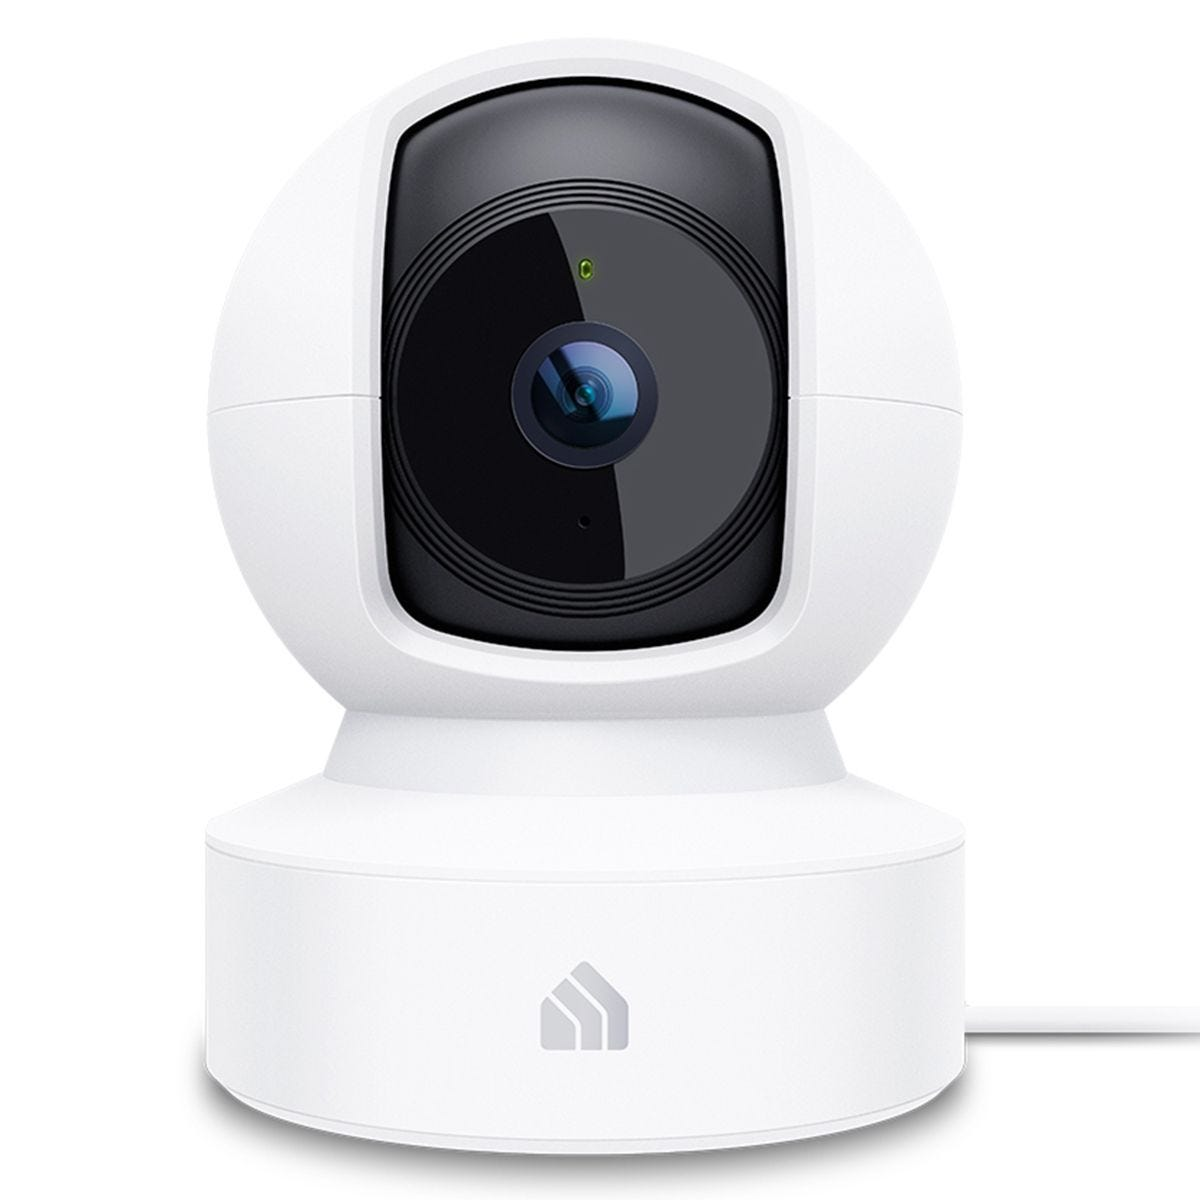 TP-Link KC115 Full HD WiFi Kasa Spot Pan-Tilt Smart Home Camera with SD slot